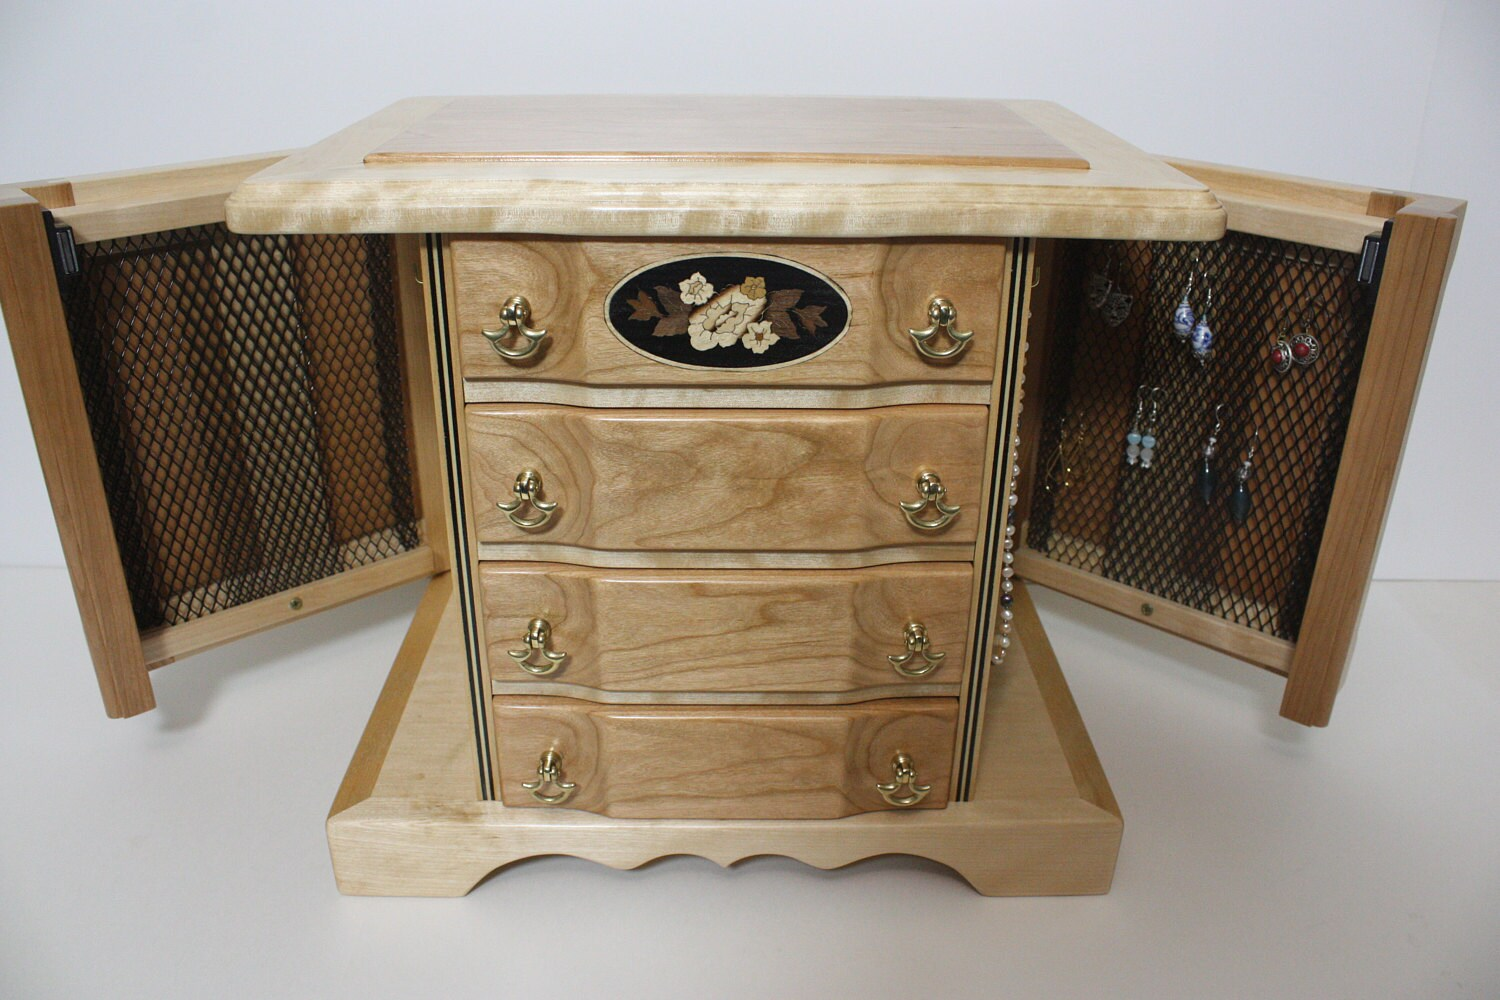 Jewelry Box with Swing Out Sides for Earrings and Hooks for Necklaces